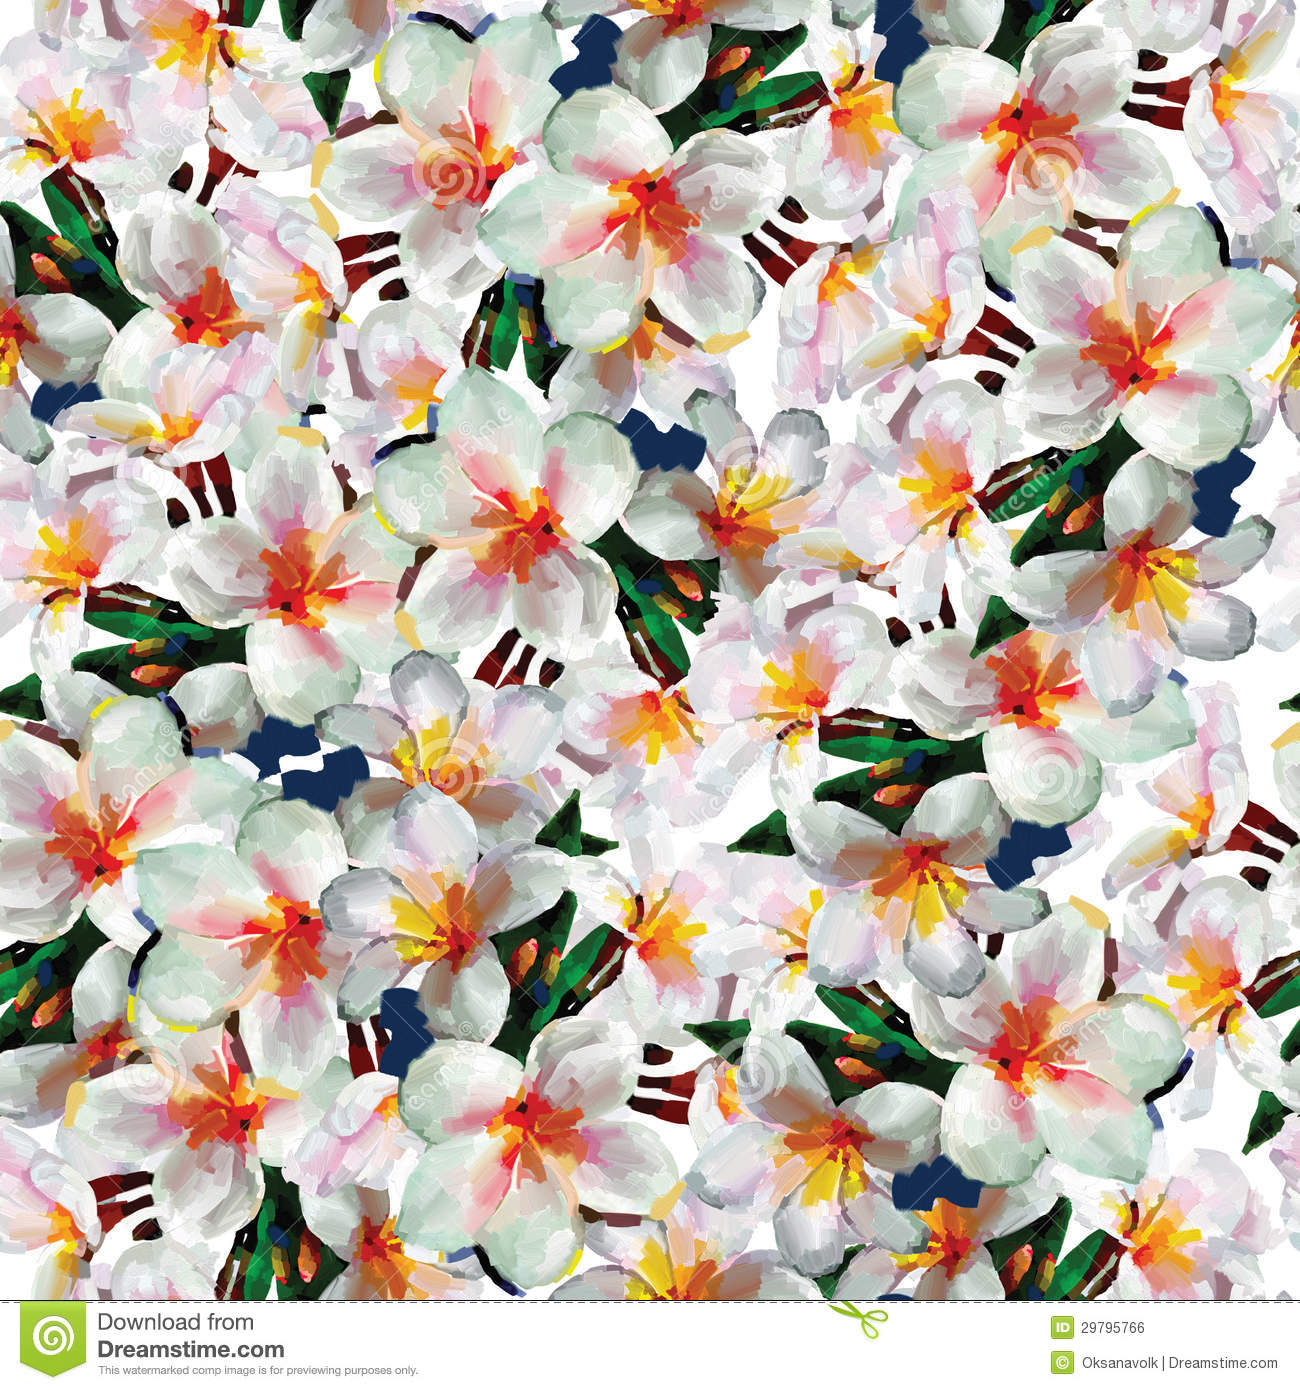 Free pictures of exotic flowers banner transparent download White Exotic Flowers Seamless Pattern Background Royalty Free ... banner transparent download